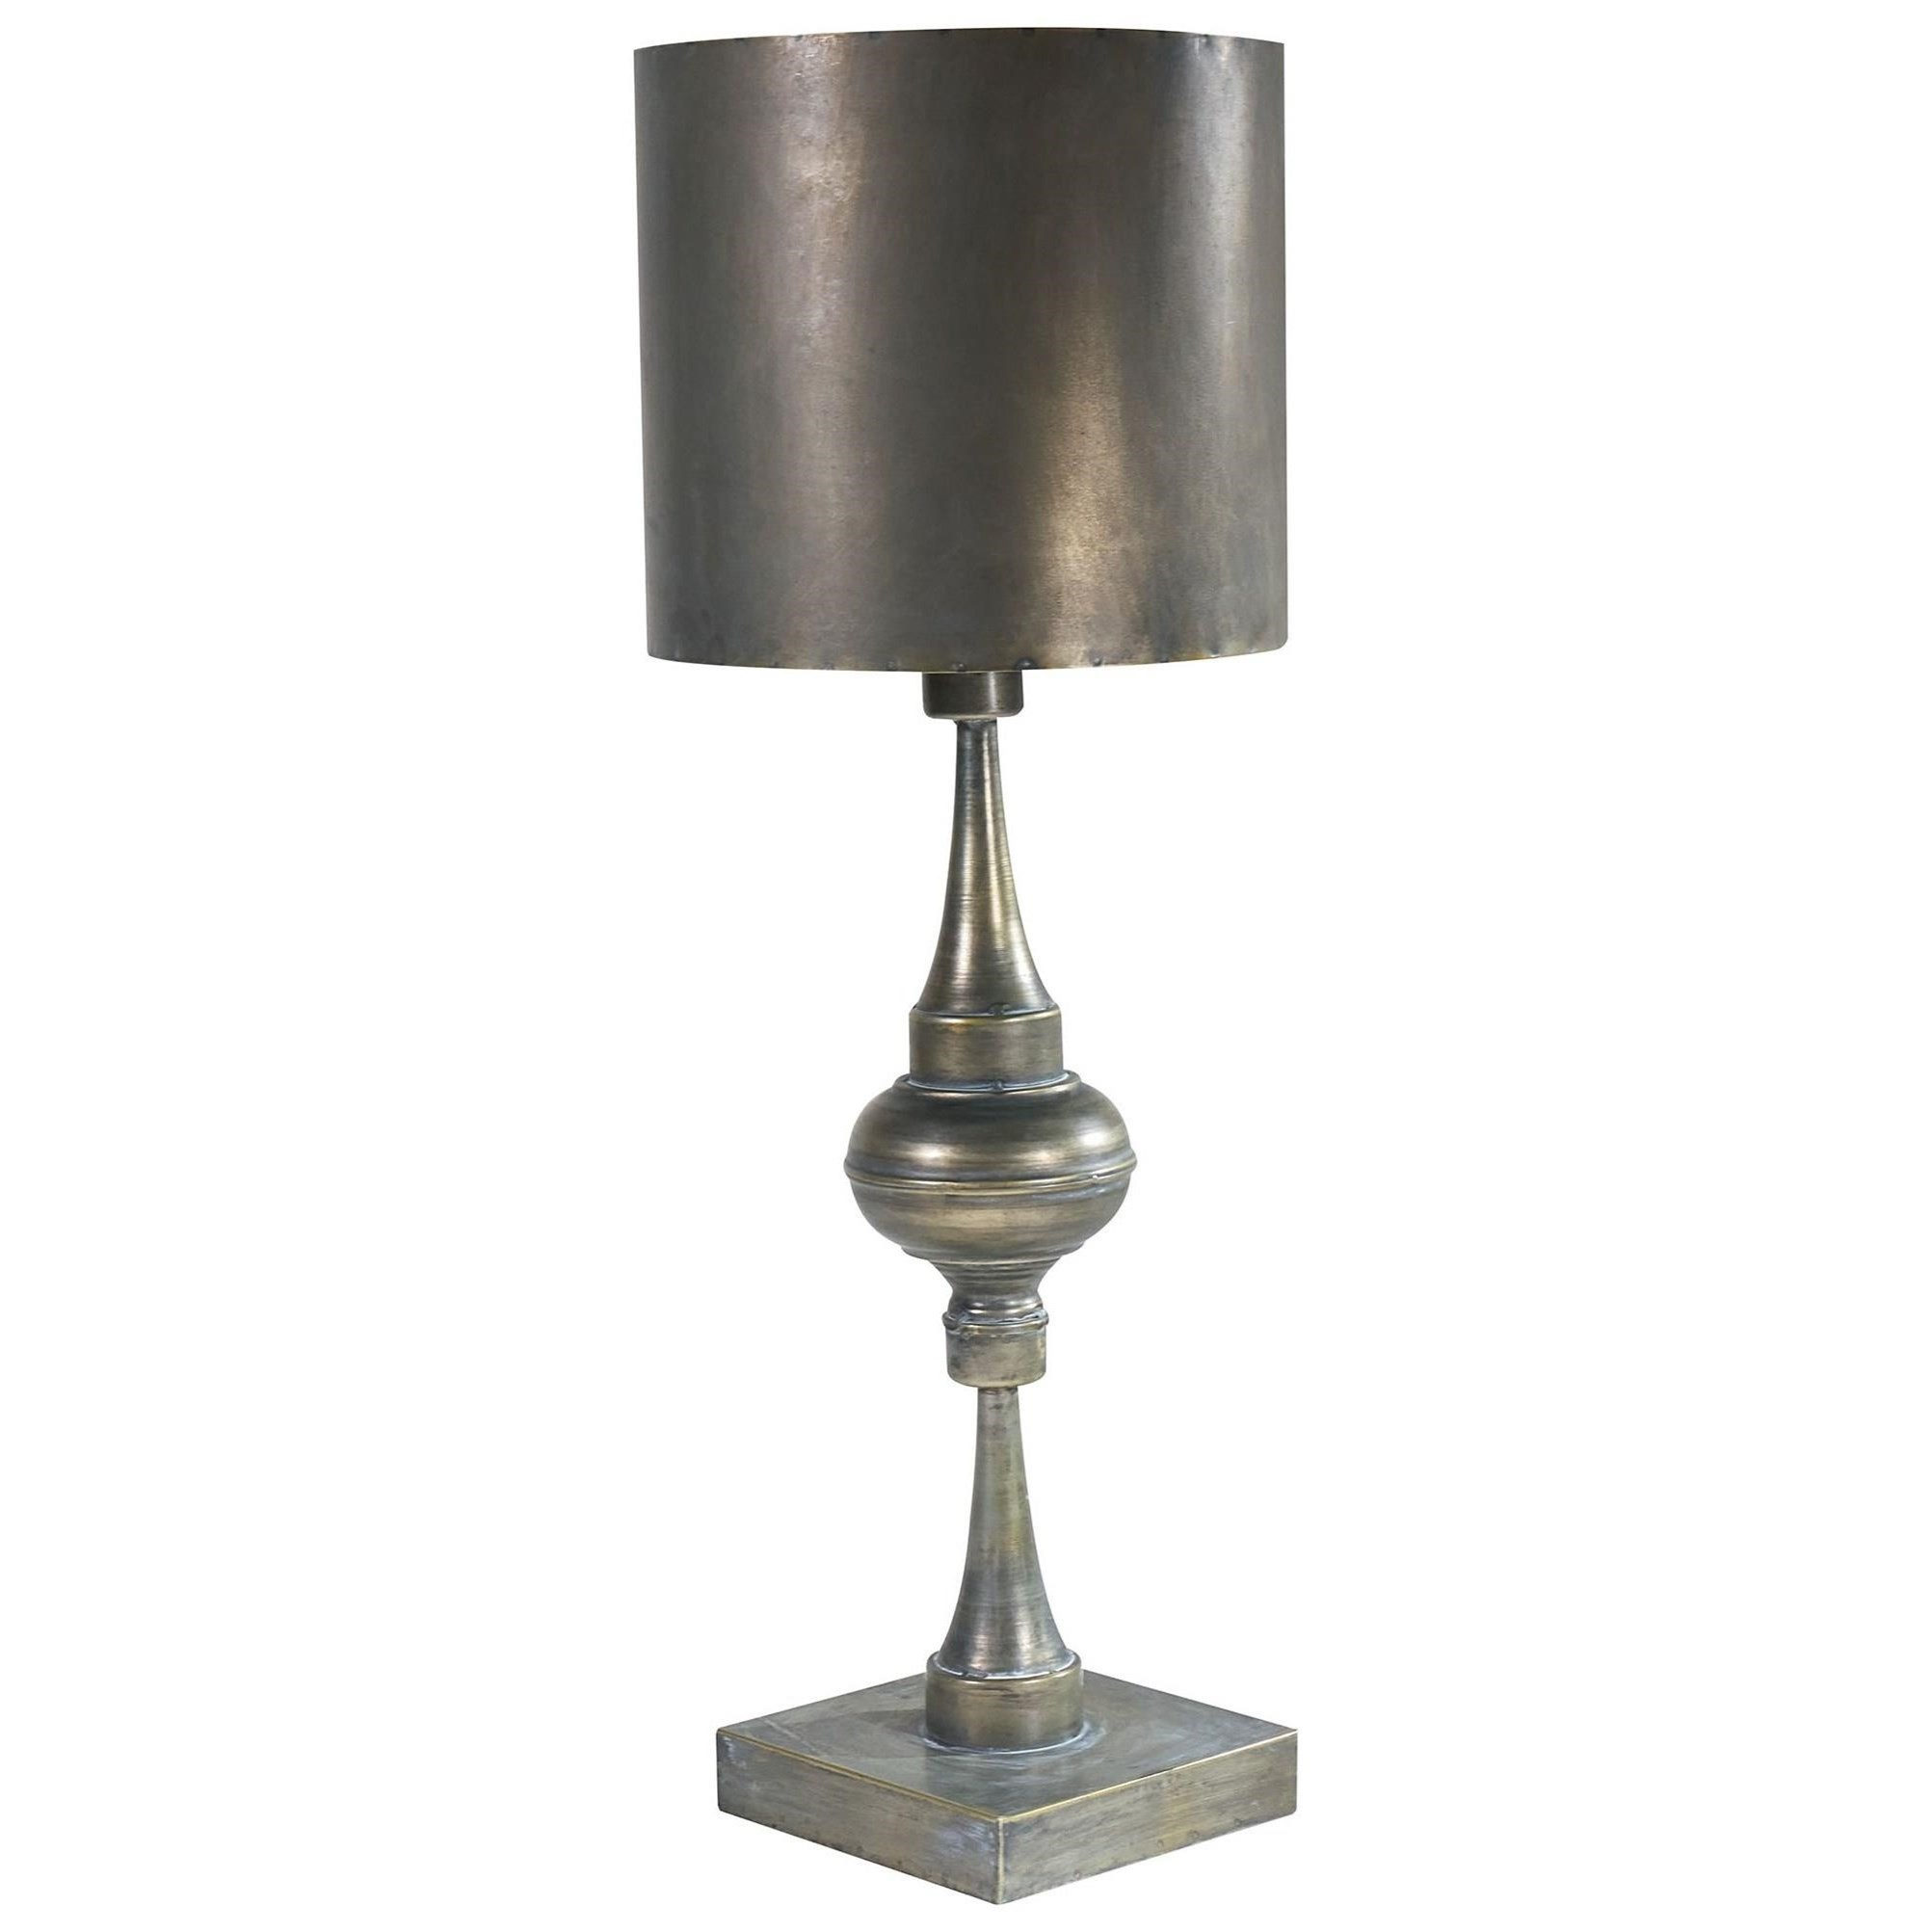 Magnolia Home By Joanna Gaines Accessories Metal Ore Table Lamp